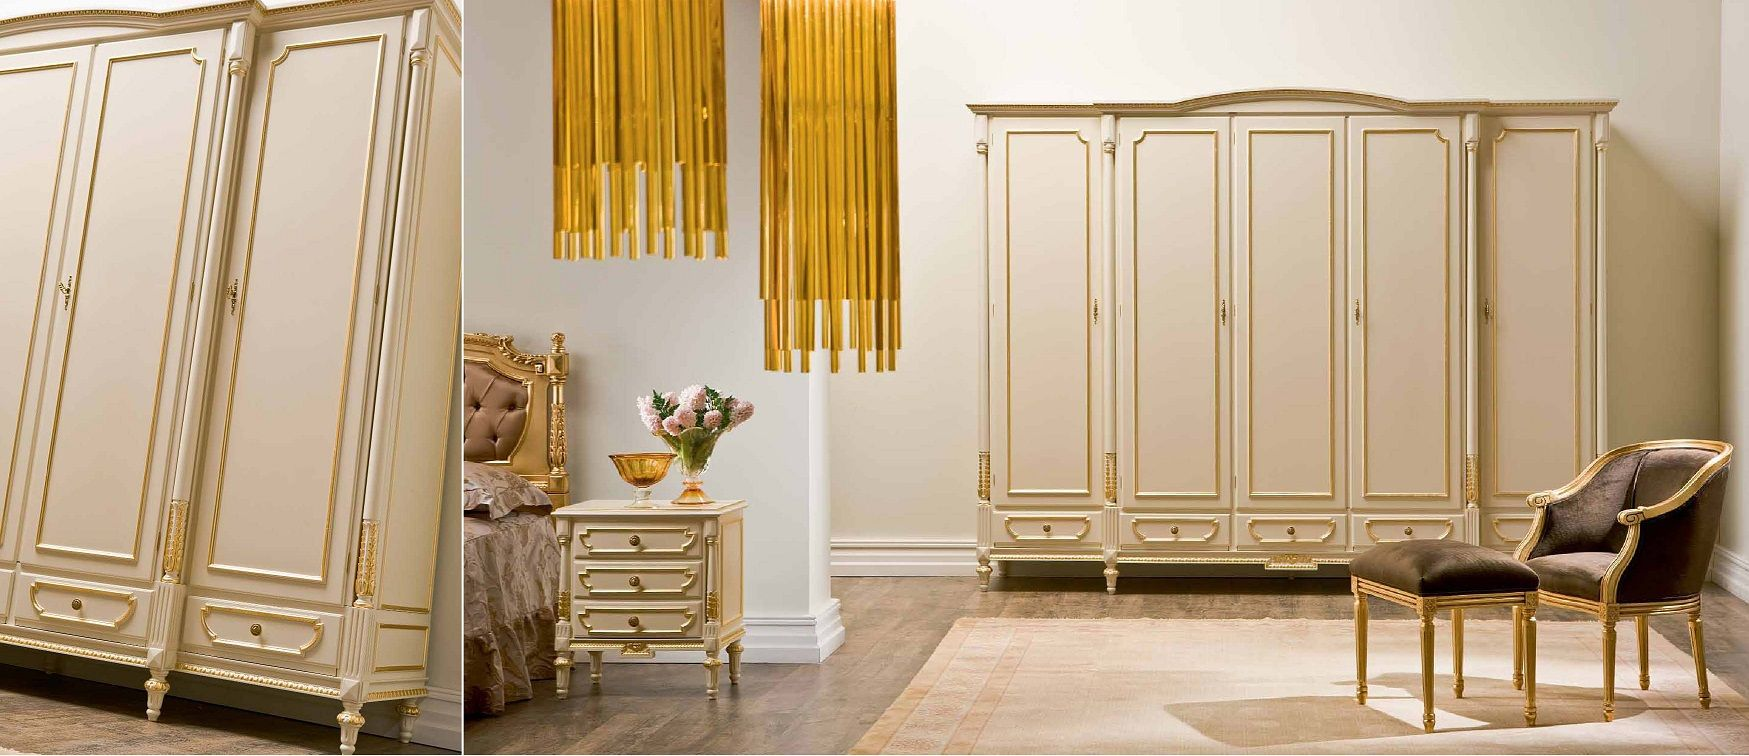 luxus m bel luxus schlafzimmer serie silik istaridie m bel aus italien. Black Bedroom Furniture Sets. Home Design Ideas